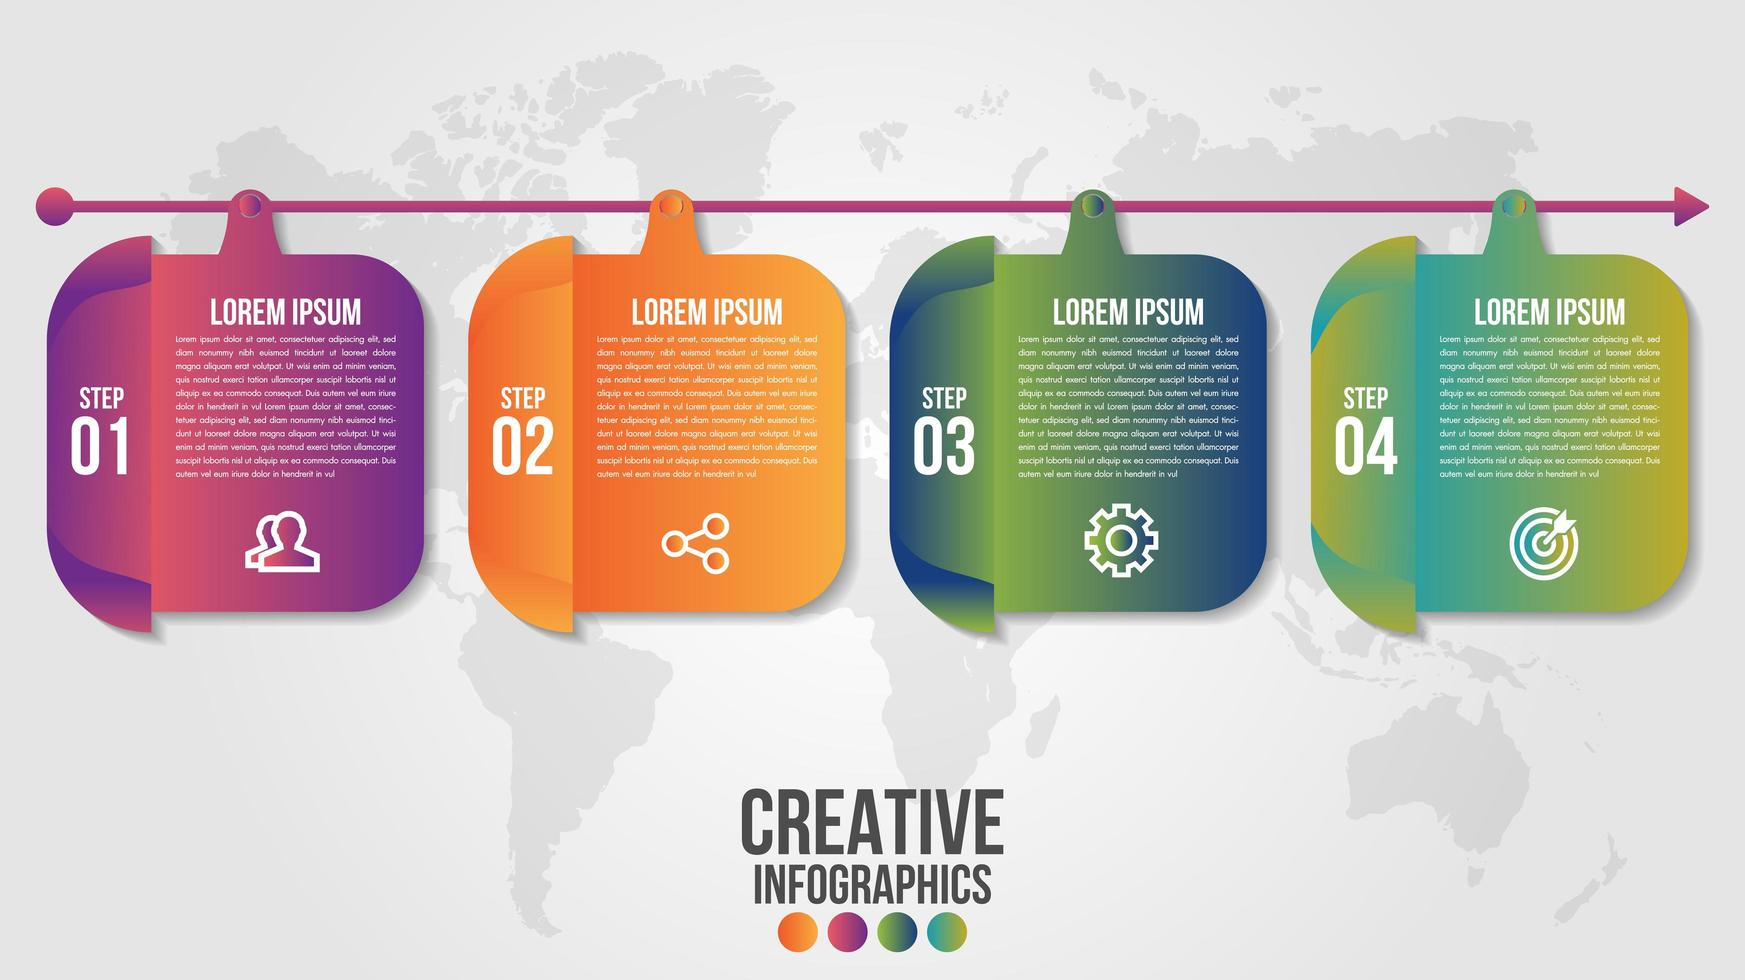 Infographic timeline with 4 rounded squares on arrow vector